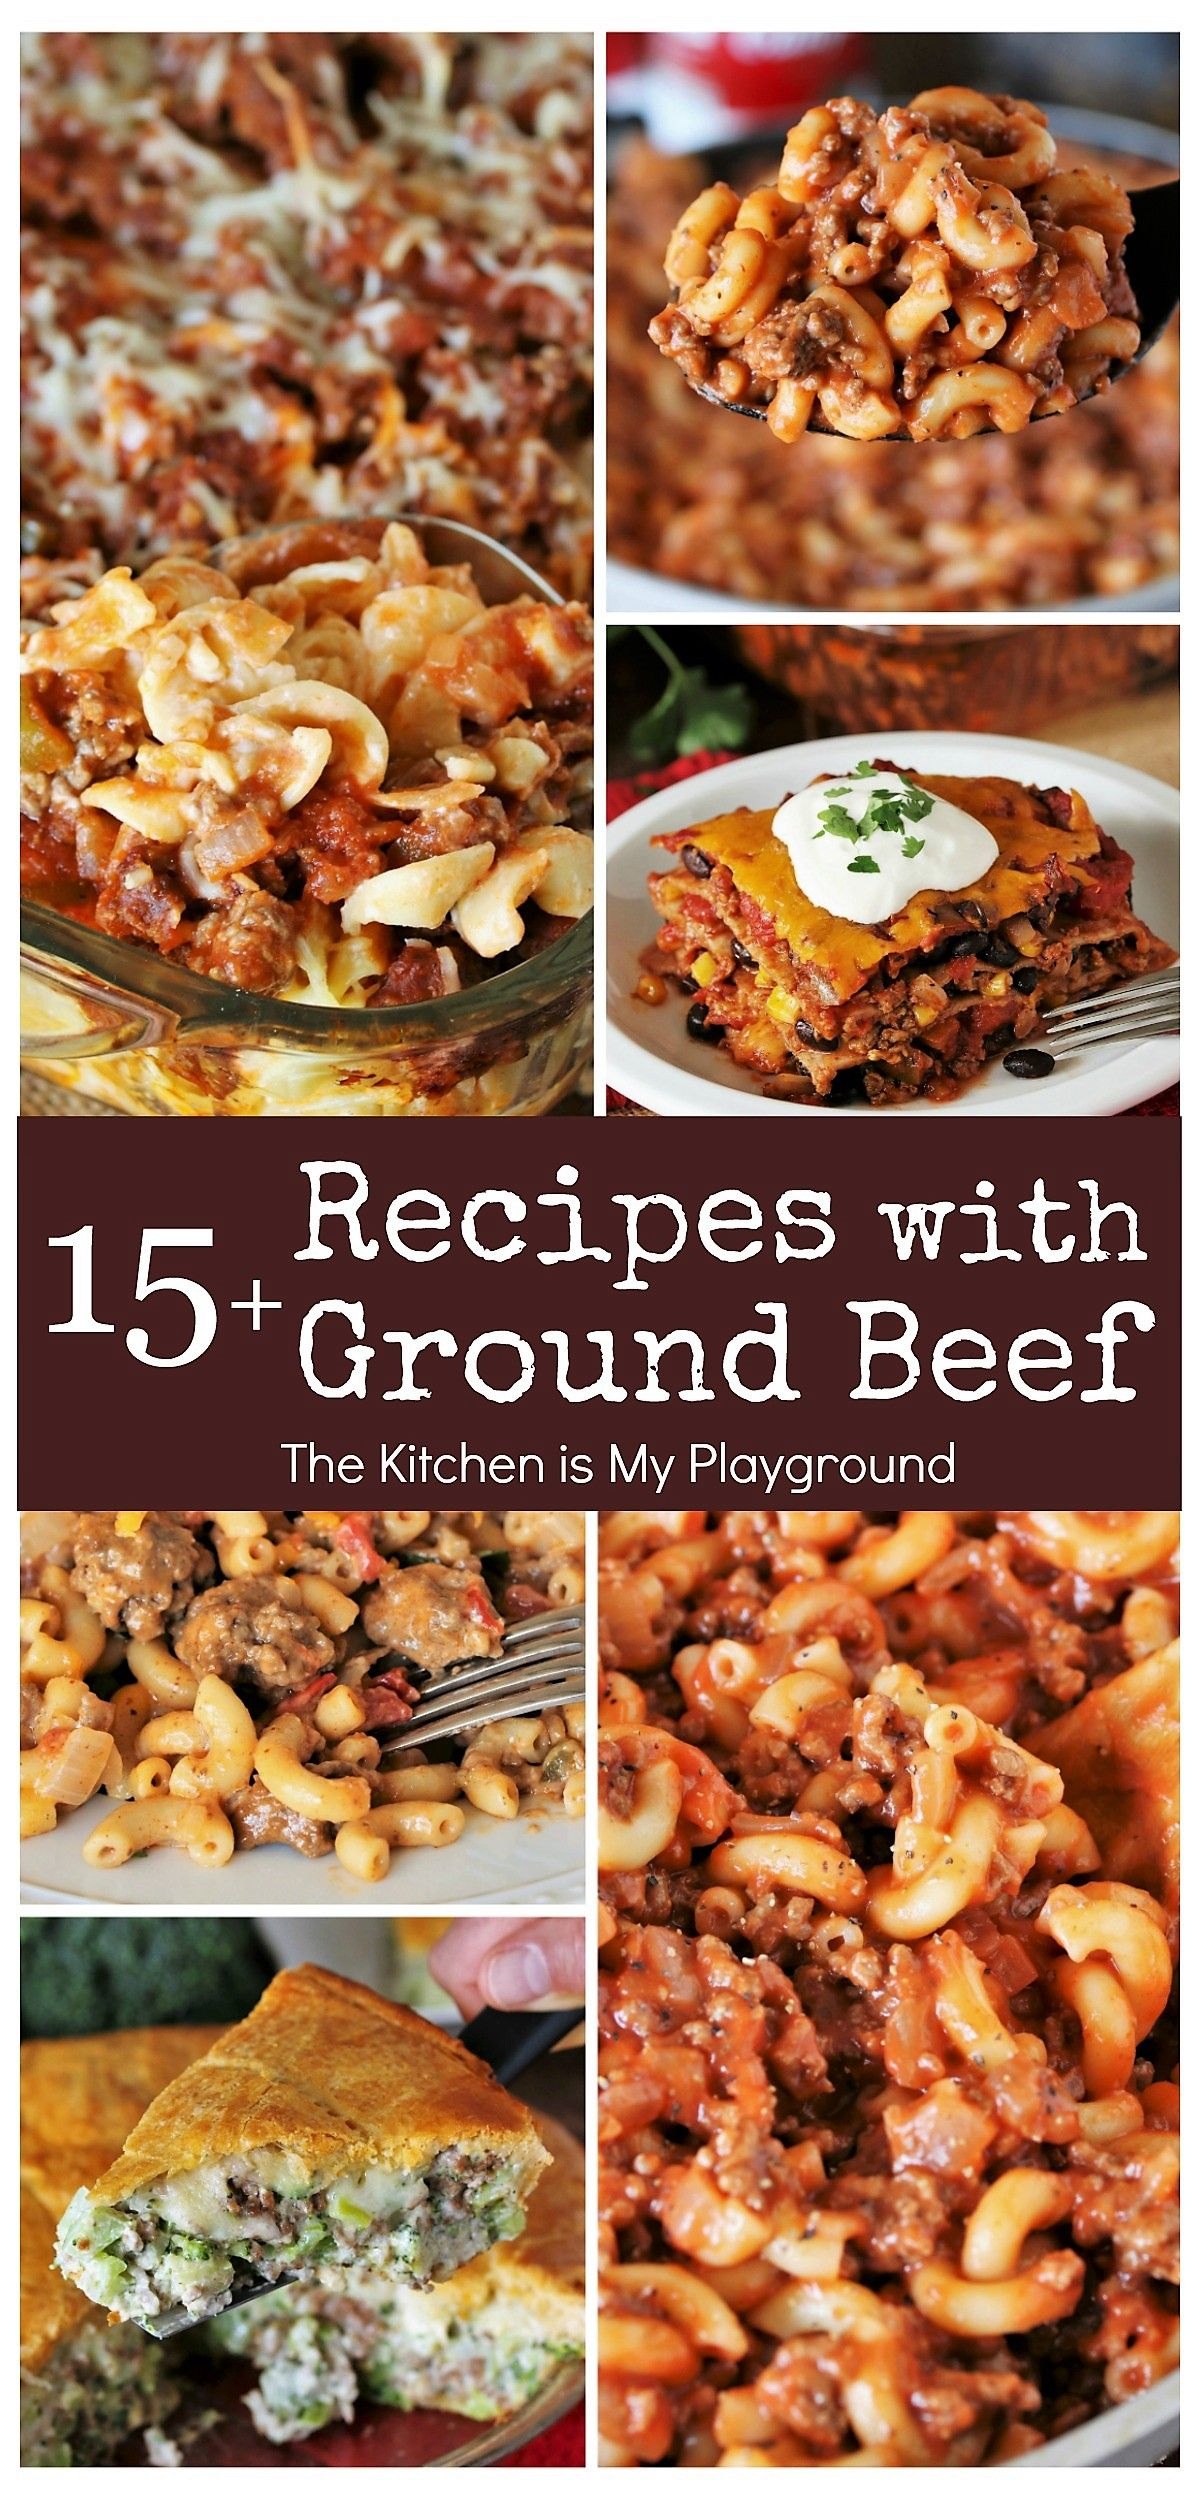 15 Dinner Recipes With Ground Beef Easy Ideas The Whole Family Will Love In 2020 Dinner With Ground Beef Ground Beef Recipes Beef Dinner